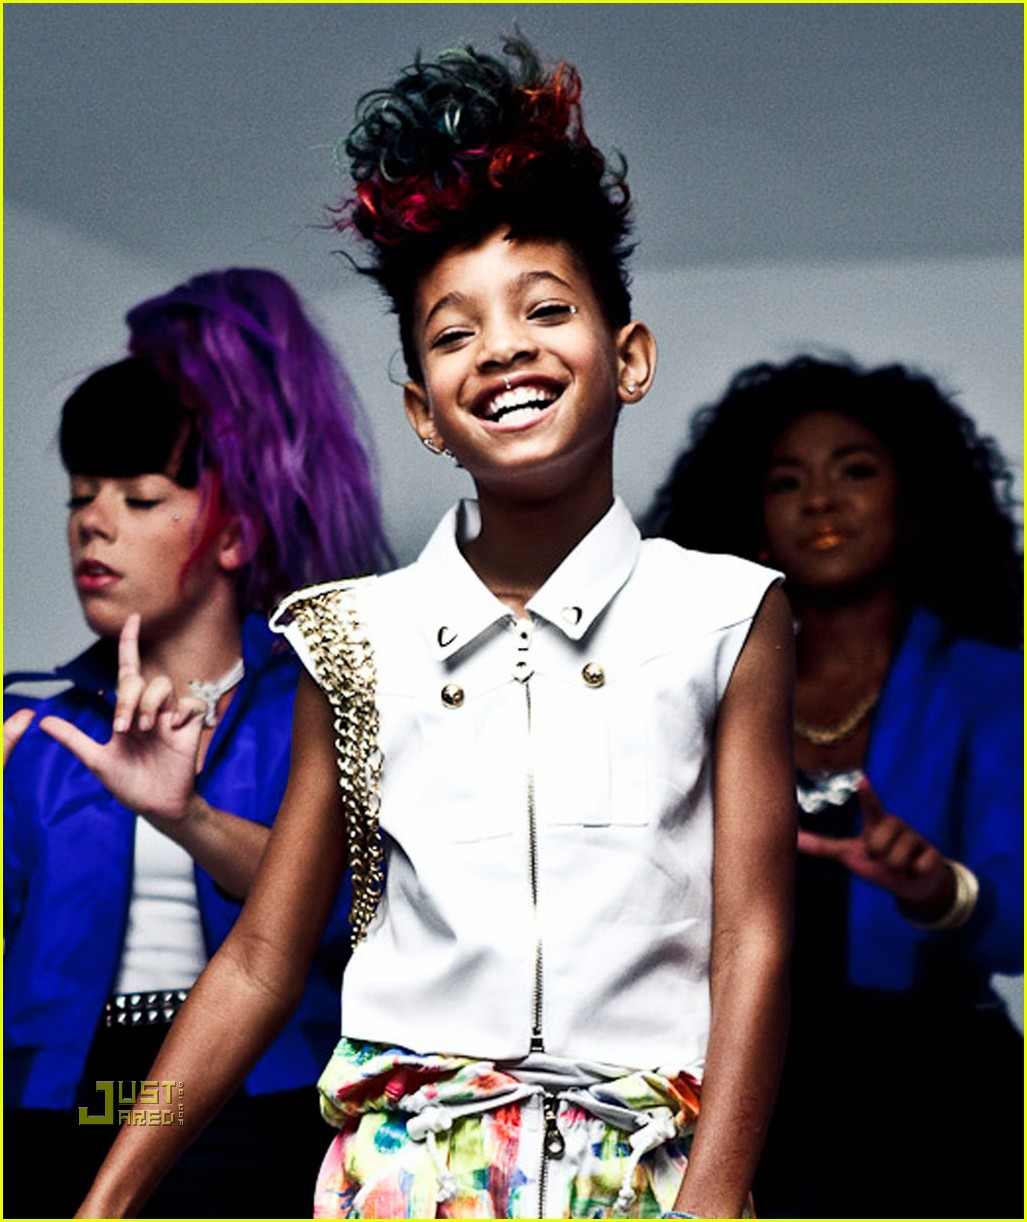 willow smith whip my hair premiere 01 Hot Shots: Willow Smith Whip My Hair Video Stills